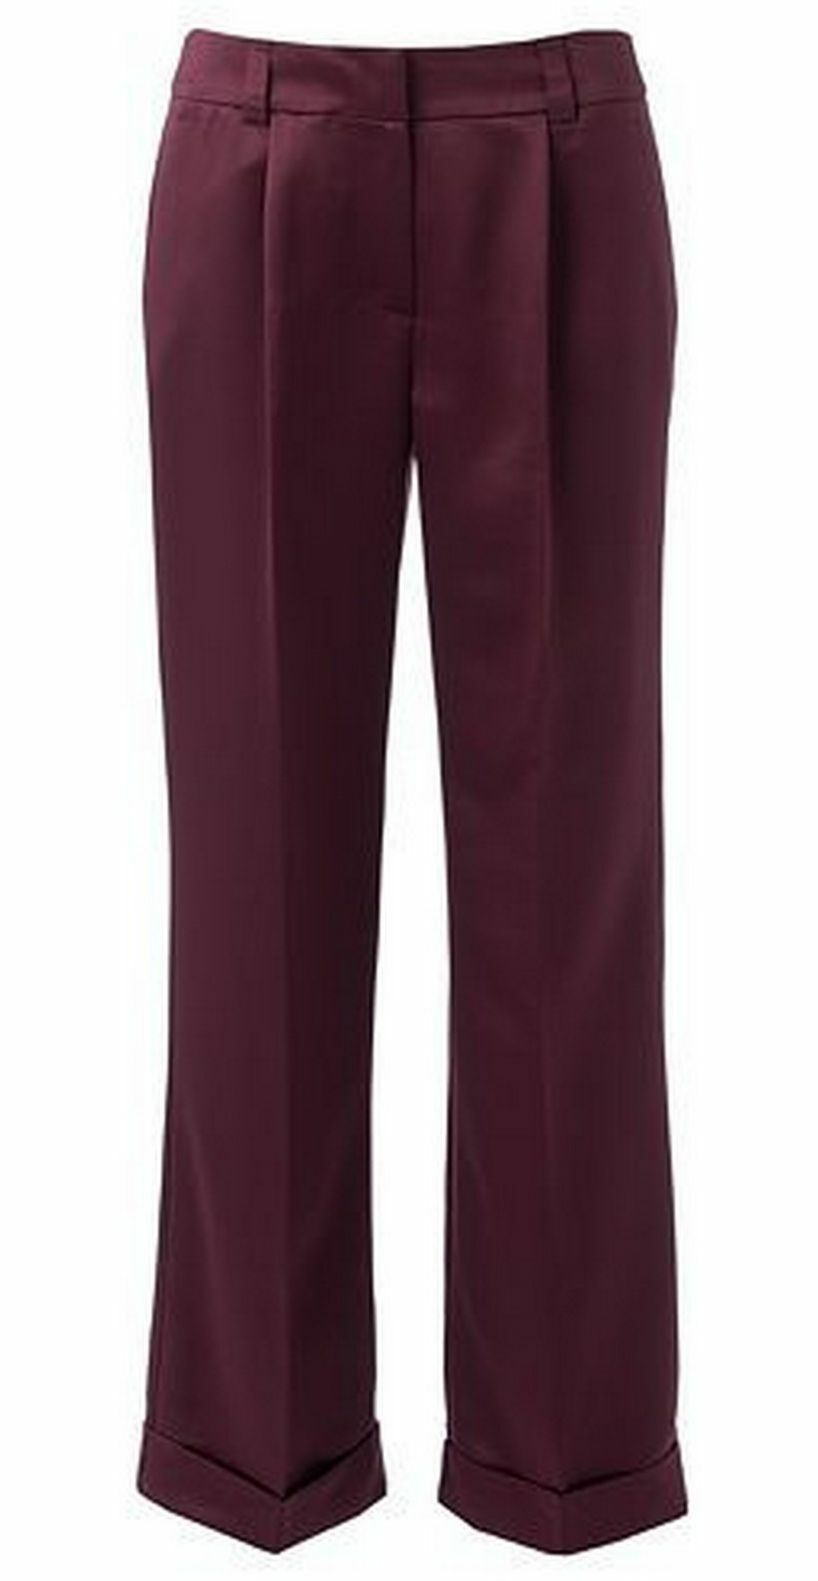 Jennifer Lopez JLo Burgundy Charmeuse Wide-Leg Trouser Pants